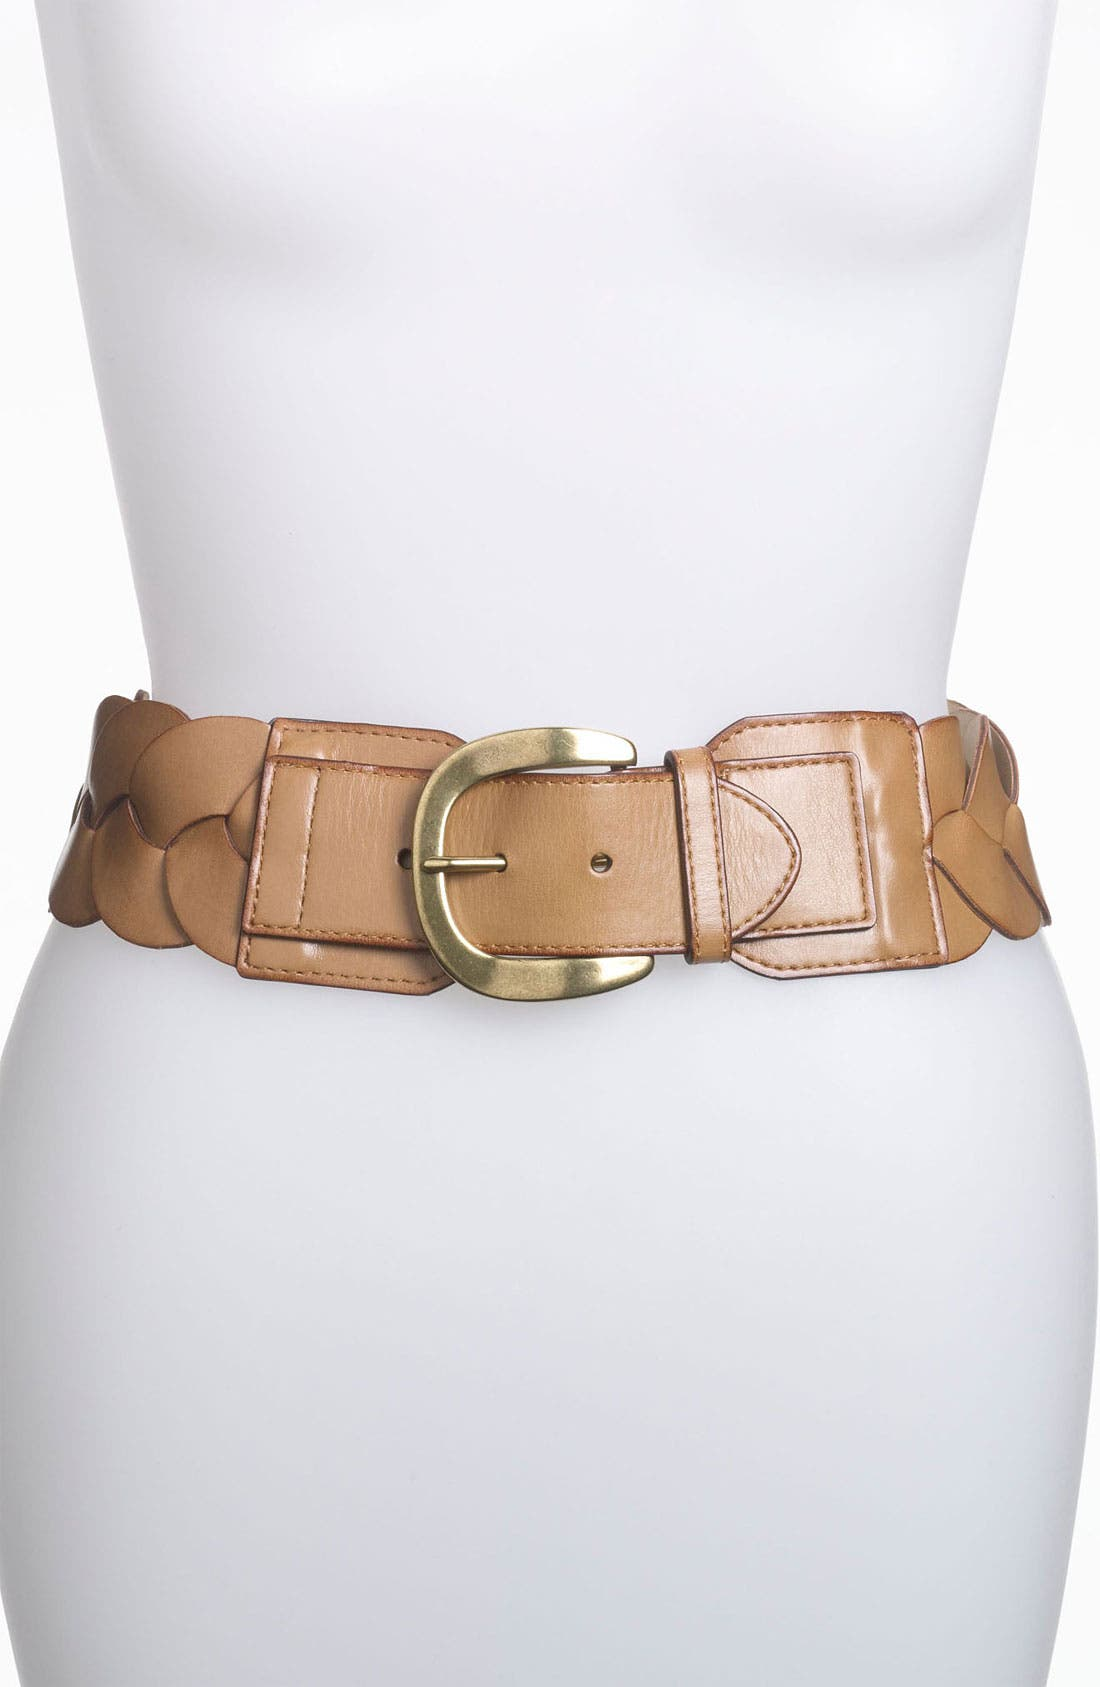 Main Image - Steven by Steve Madden Braided Stretch Belt